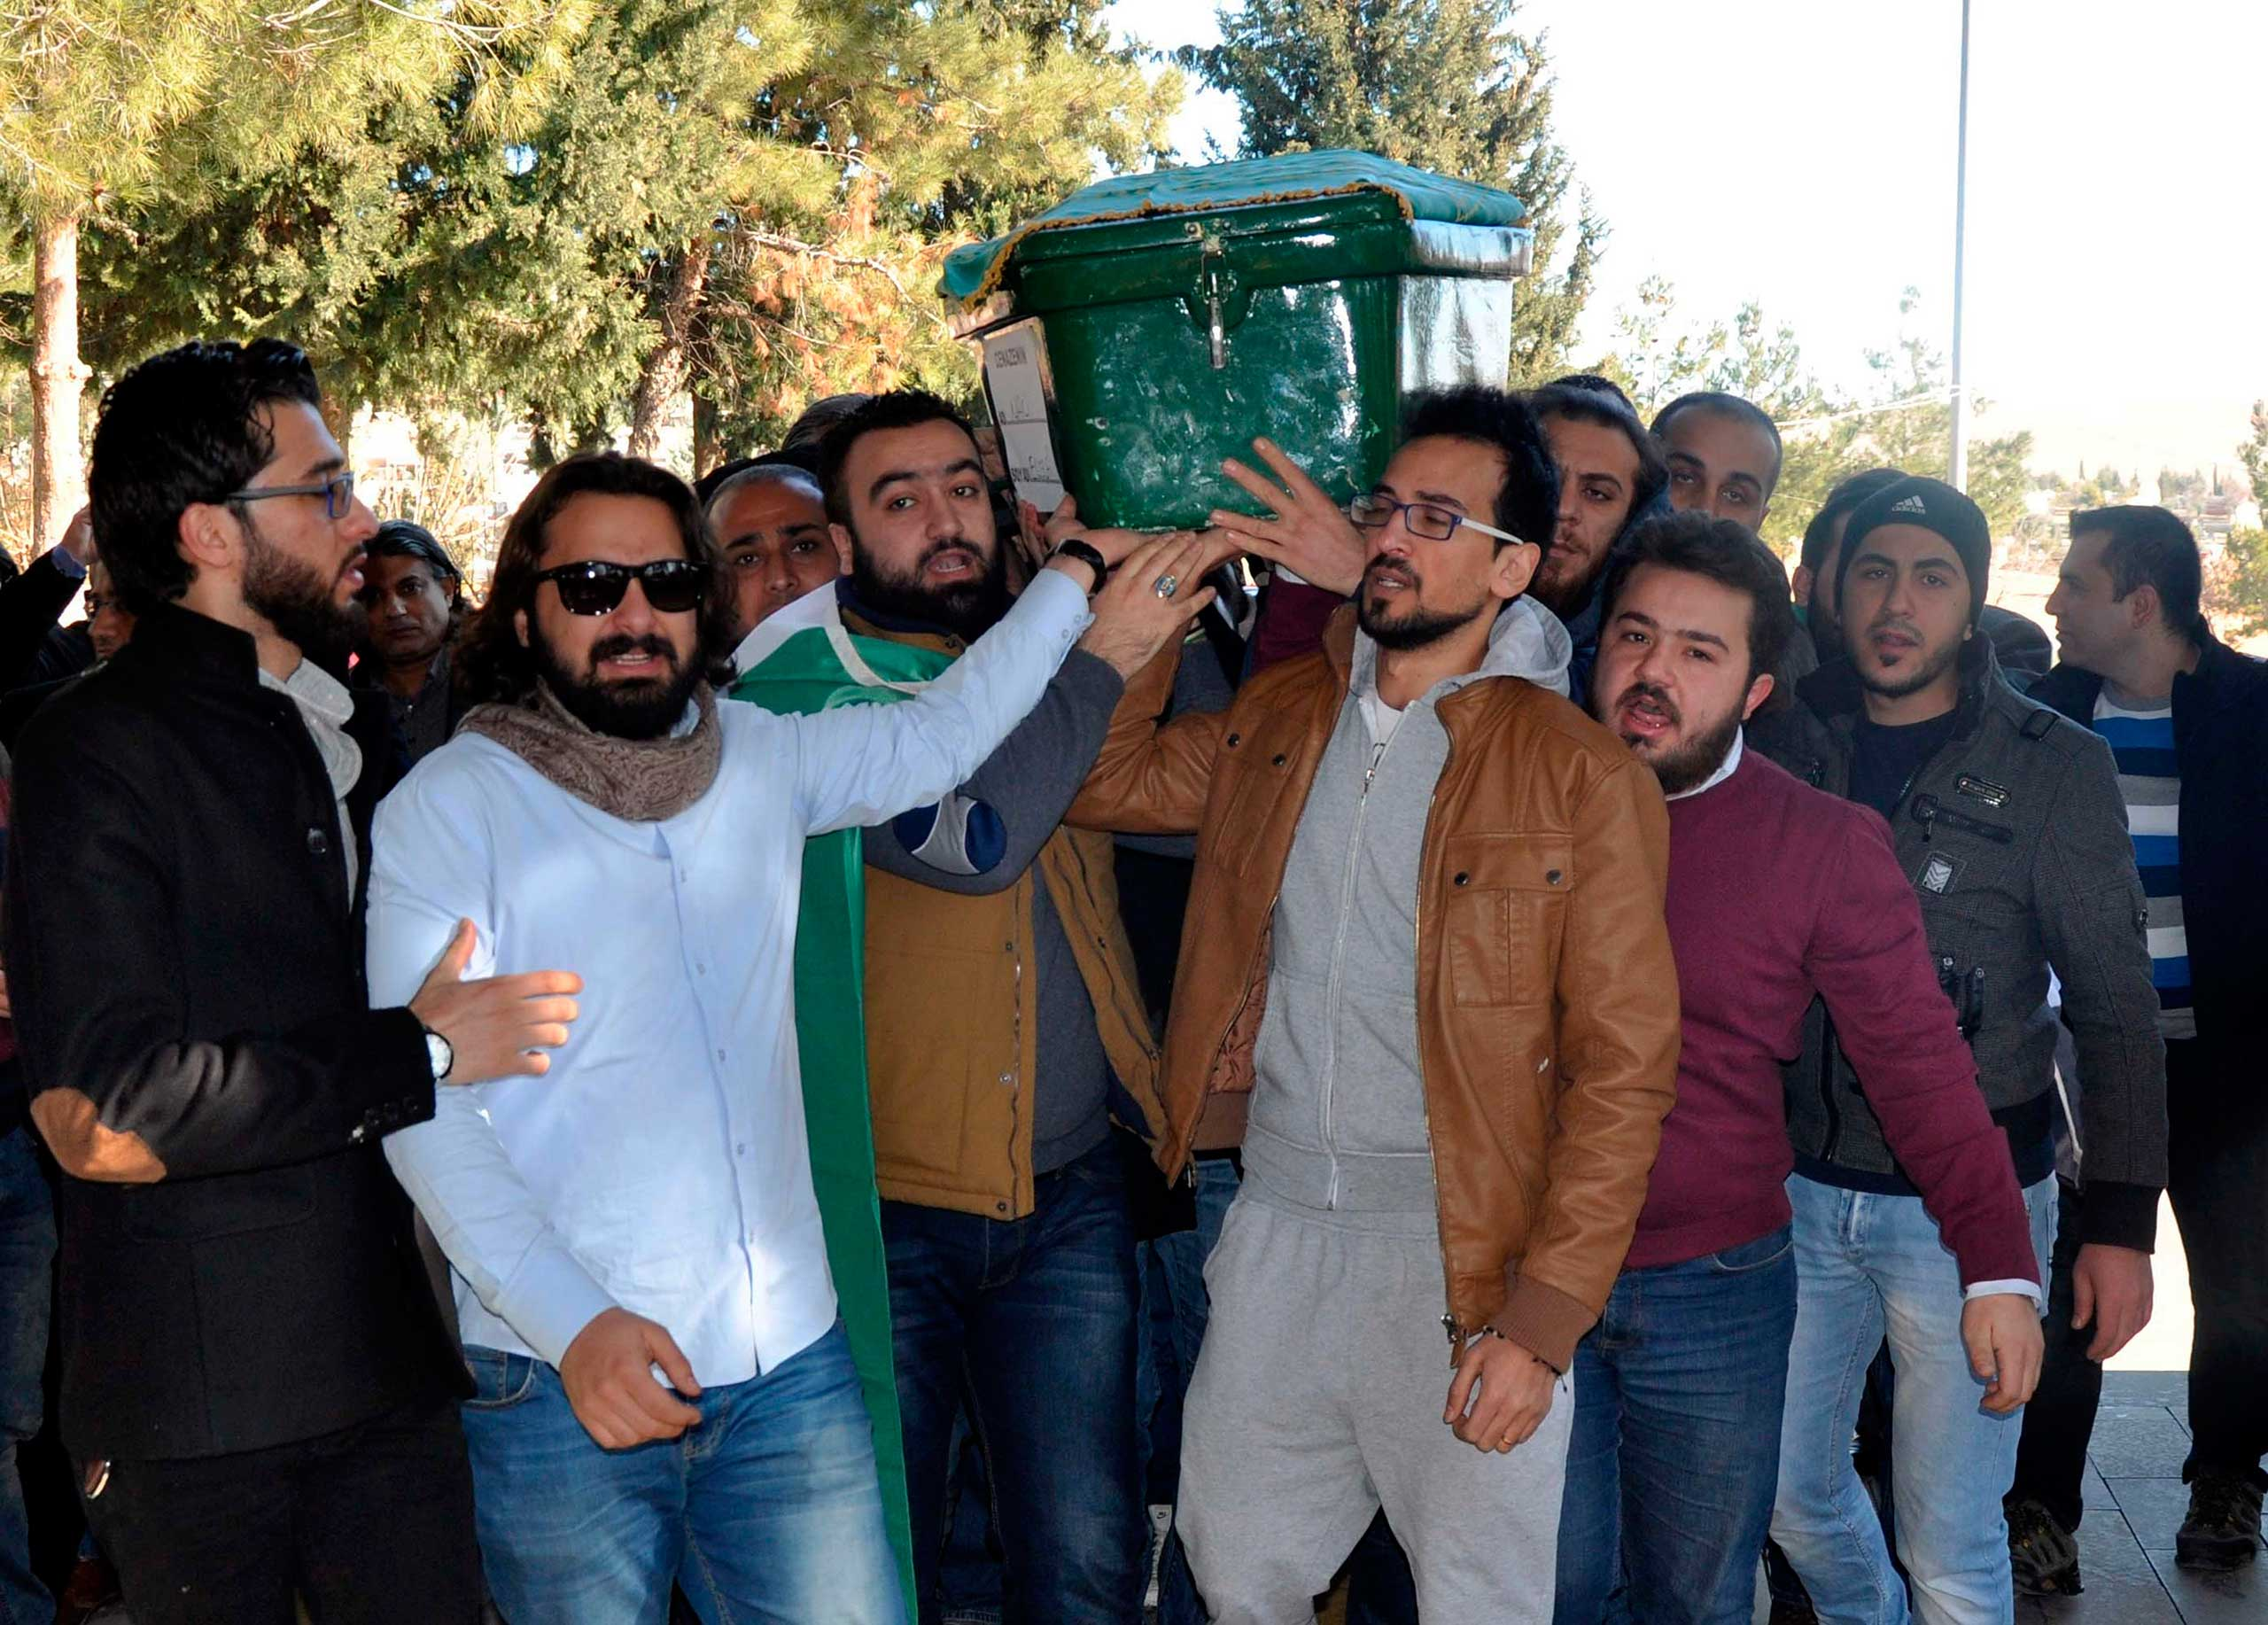 Men carry the coffin of filmmaker Naji Jerf, a citizen journalist with the anti-ISIS activist group Raqqa is Being Slaughtered Silently, who was killed Dec. 27 in Gaziantep, Turkey, on Dec. 28, 2015.